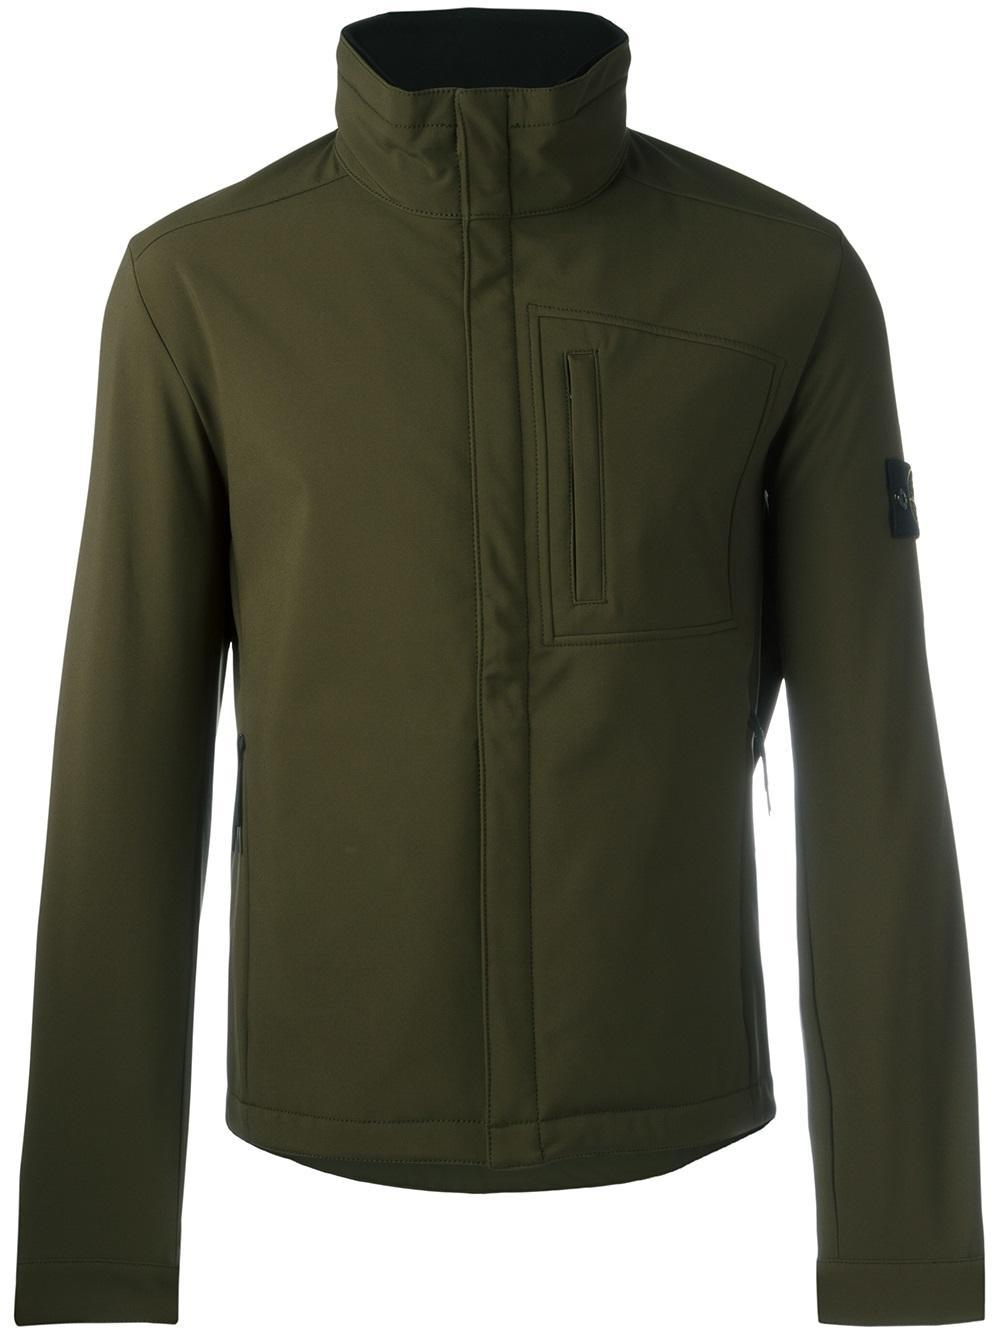 lyst stone island classic windbreaker in green for men. Black Bedroom Furniture Sets. Home Design Ideas